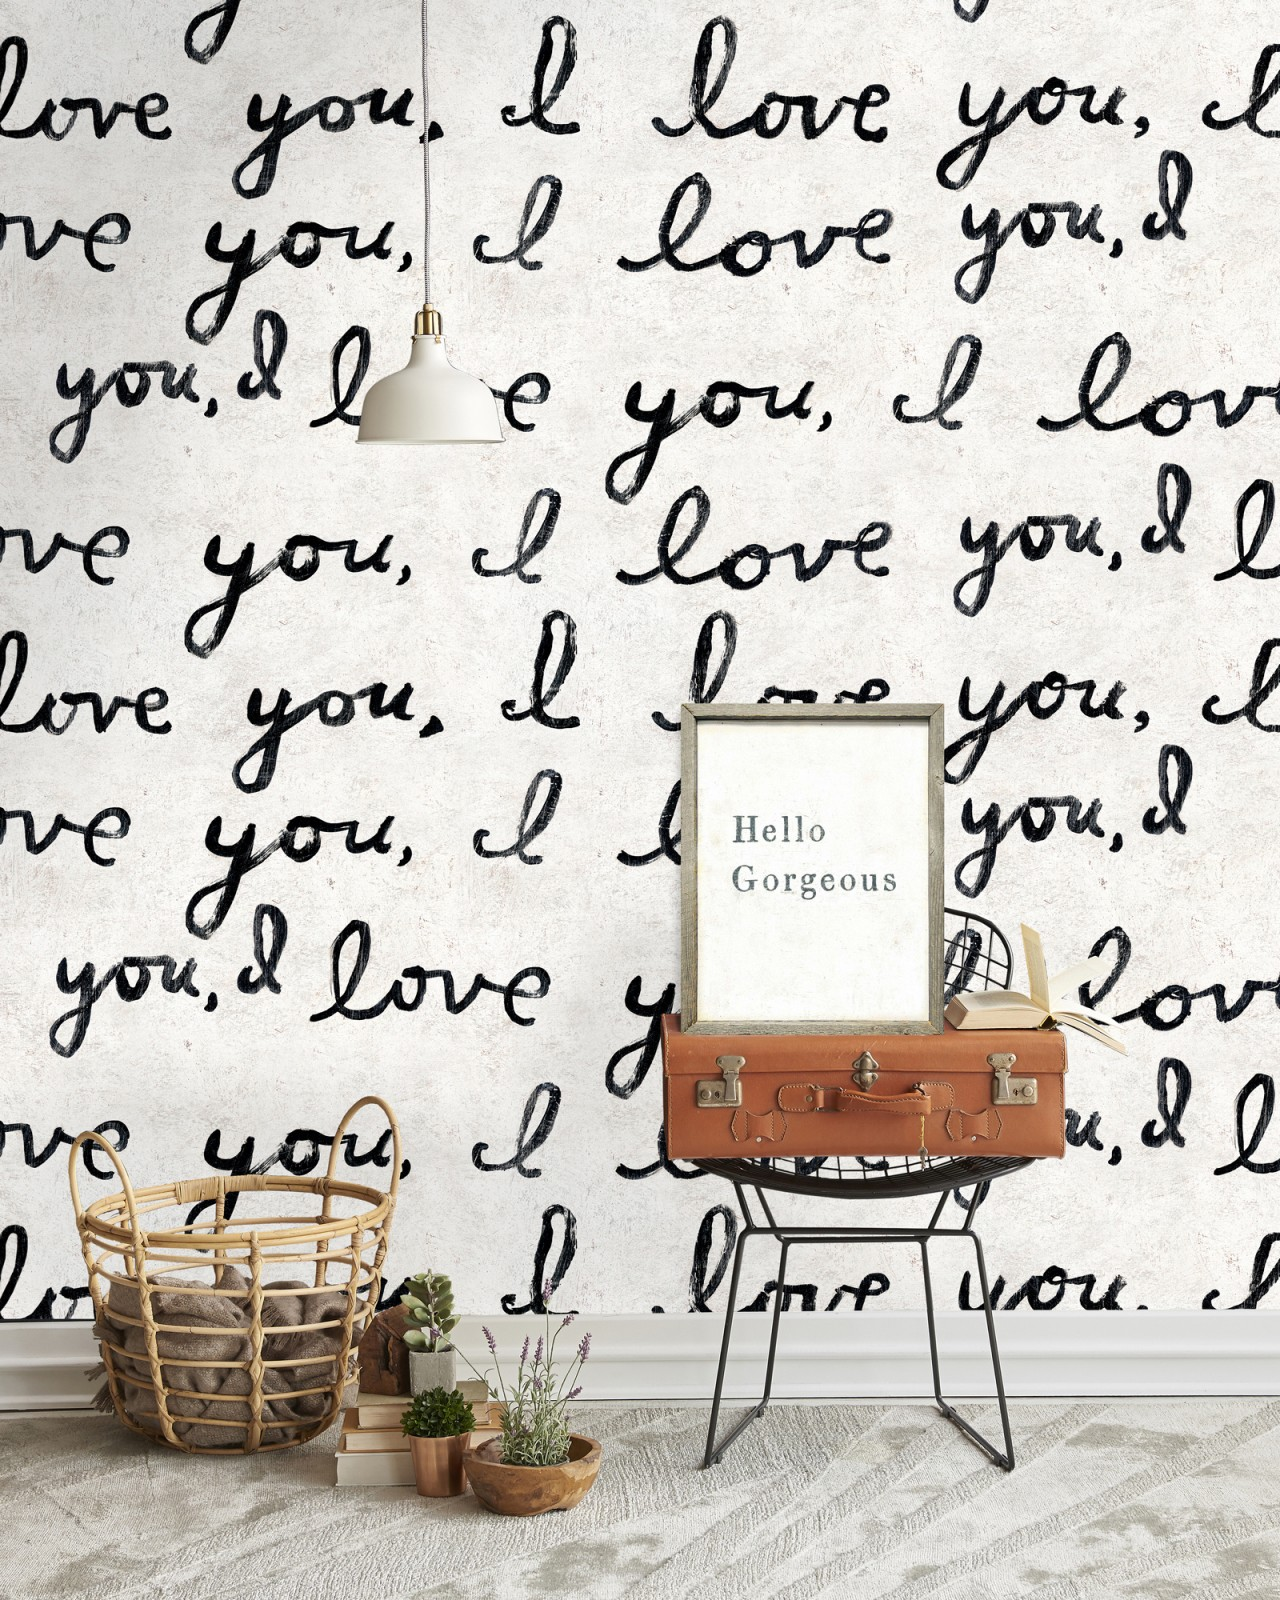 I LOVE YOU, I LOVE YOU Wallpaper